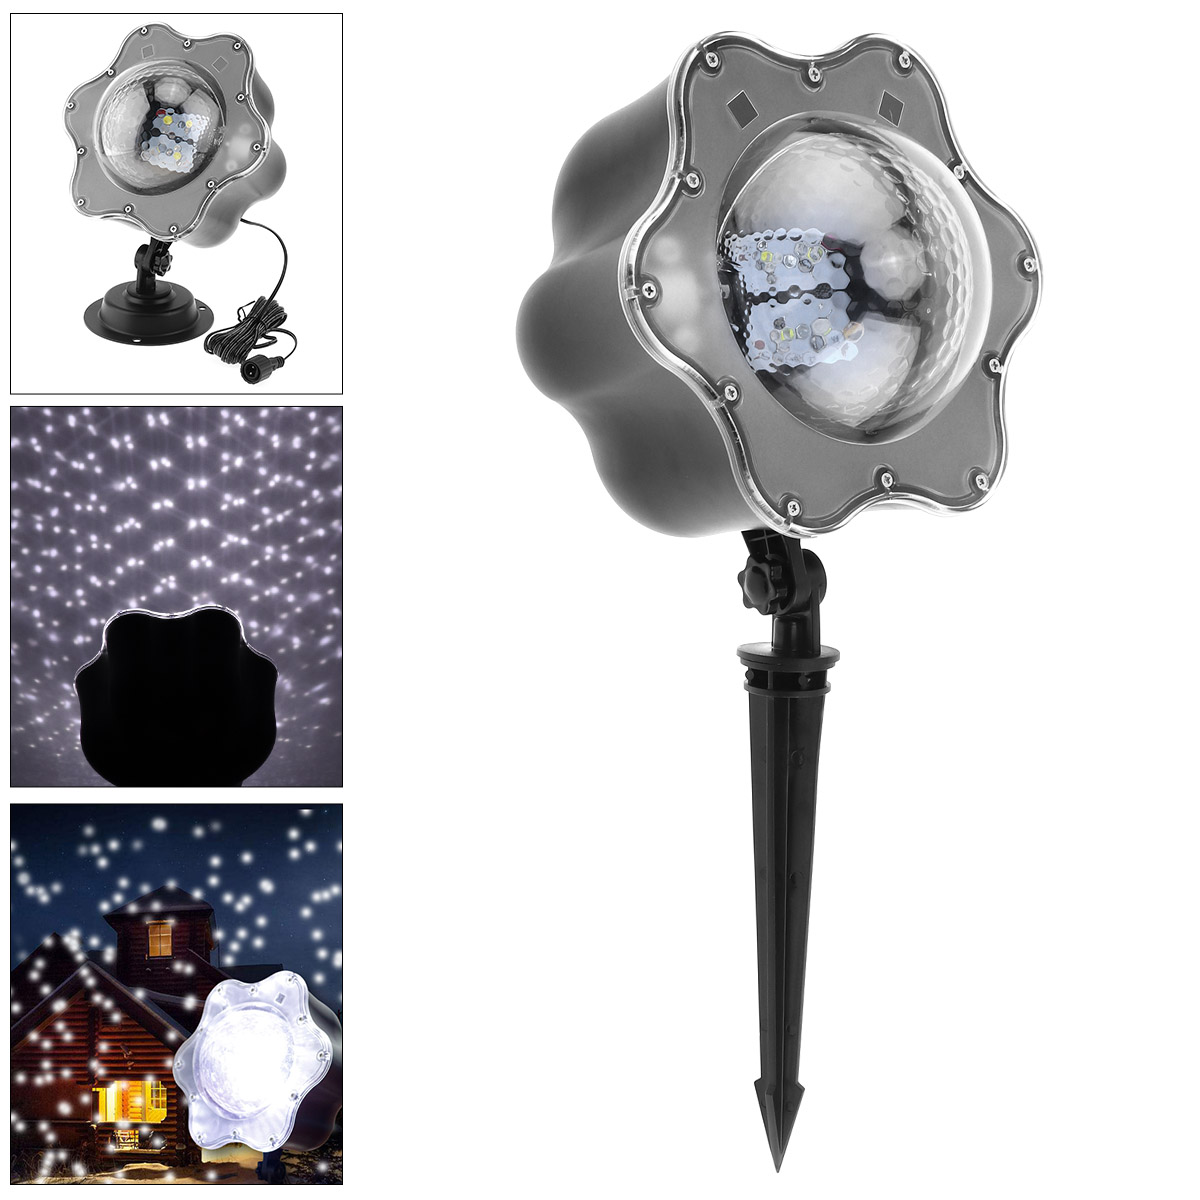 New 4W Indoor / Outdoor Waterproof Snow Projector Lamp with Remote Control and Ground Stake for Christmas / Holiday Decoration